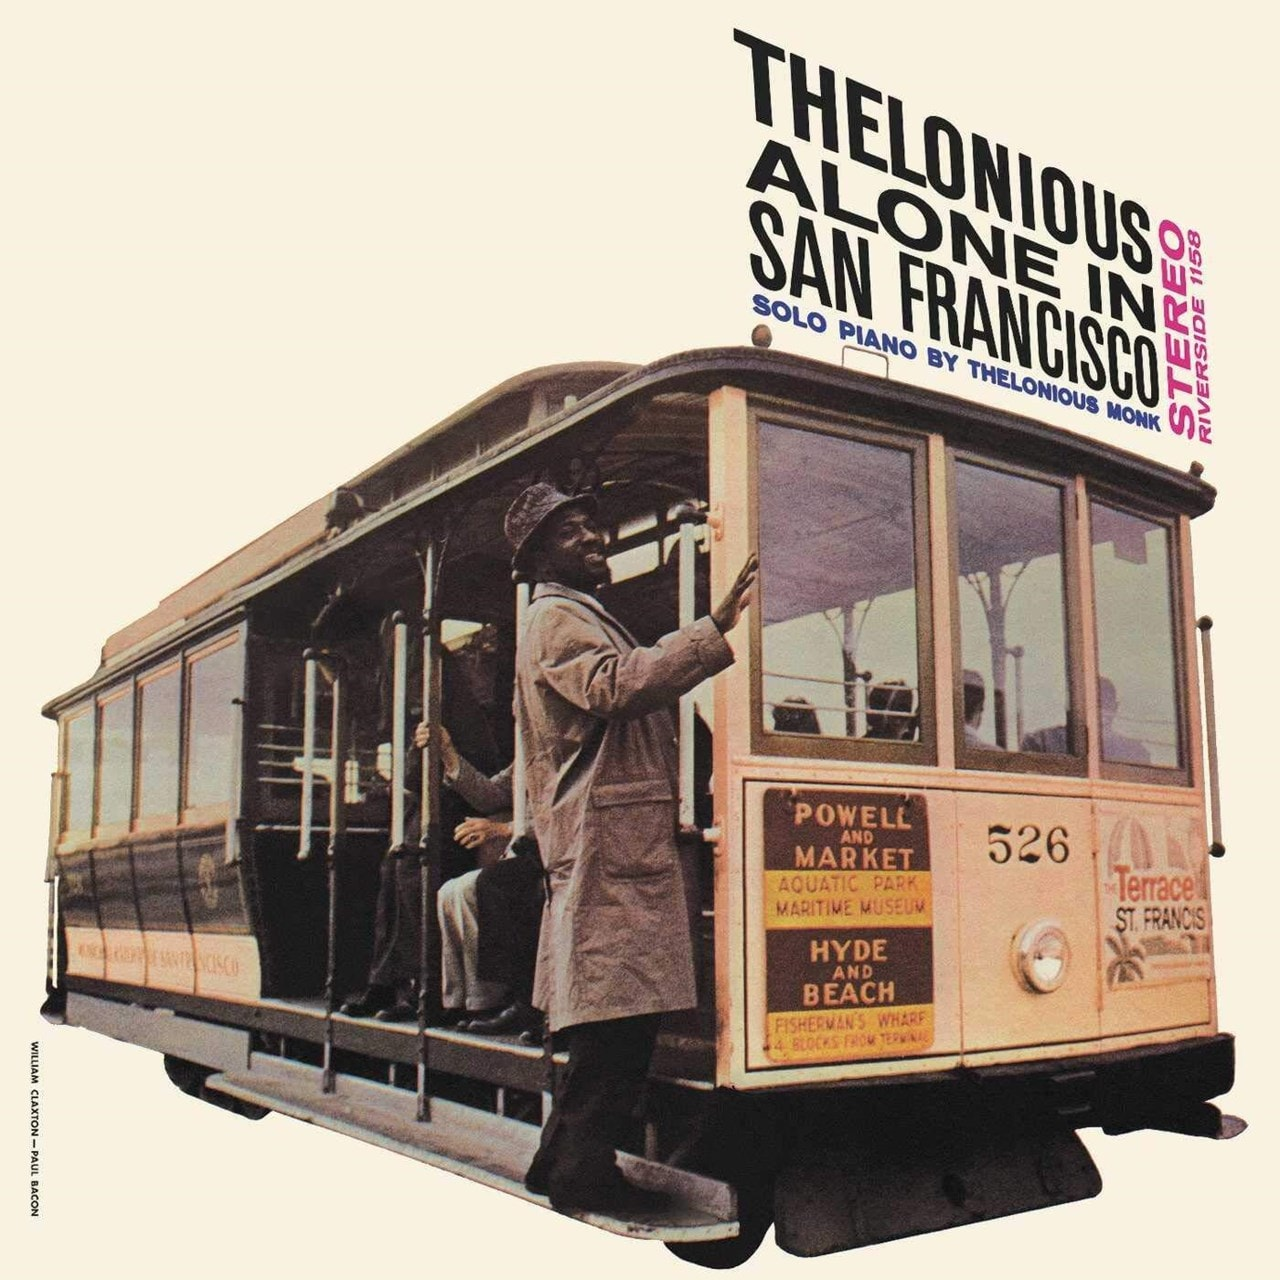 Thelonious Alone in San Francisco - 1